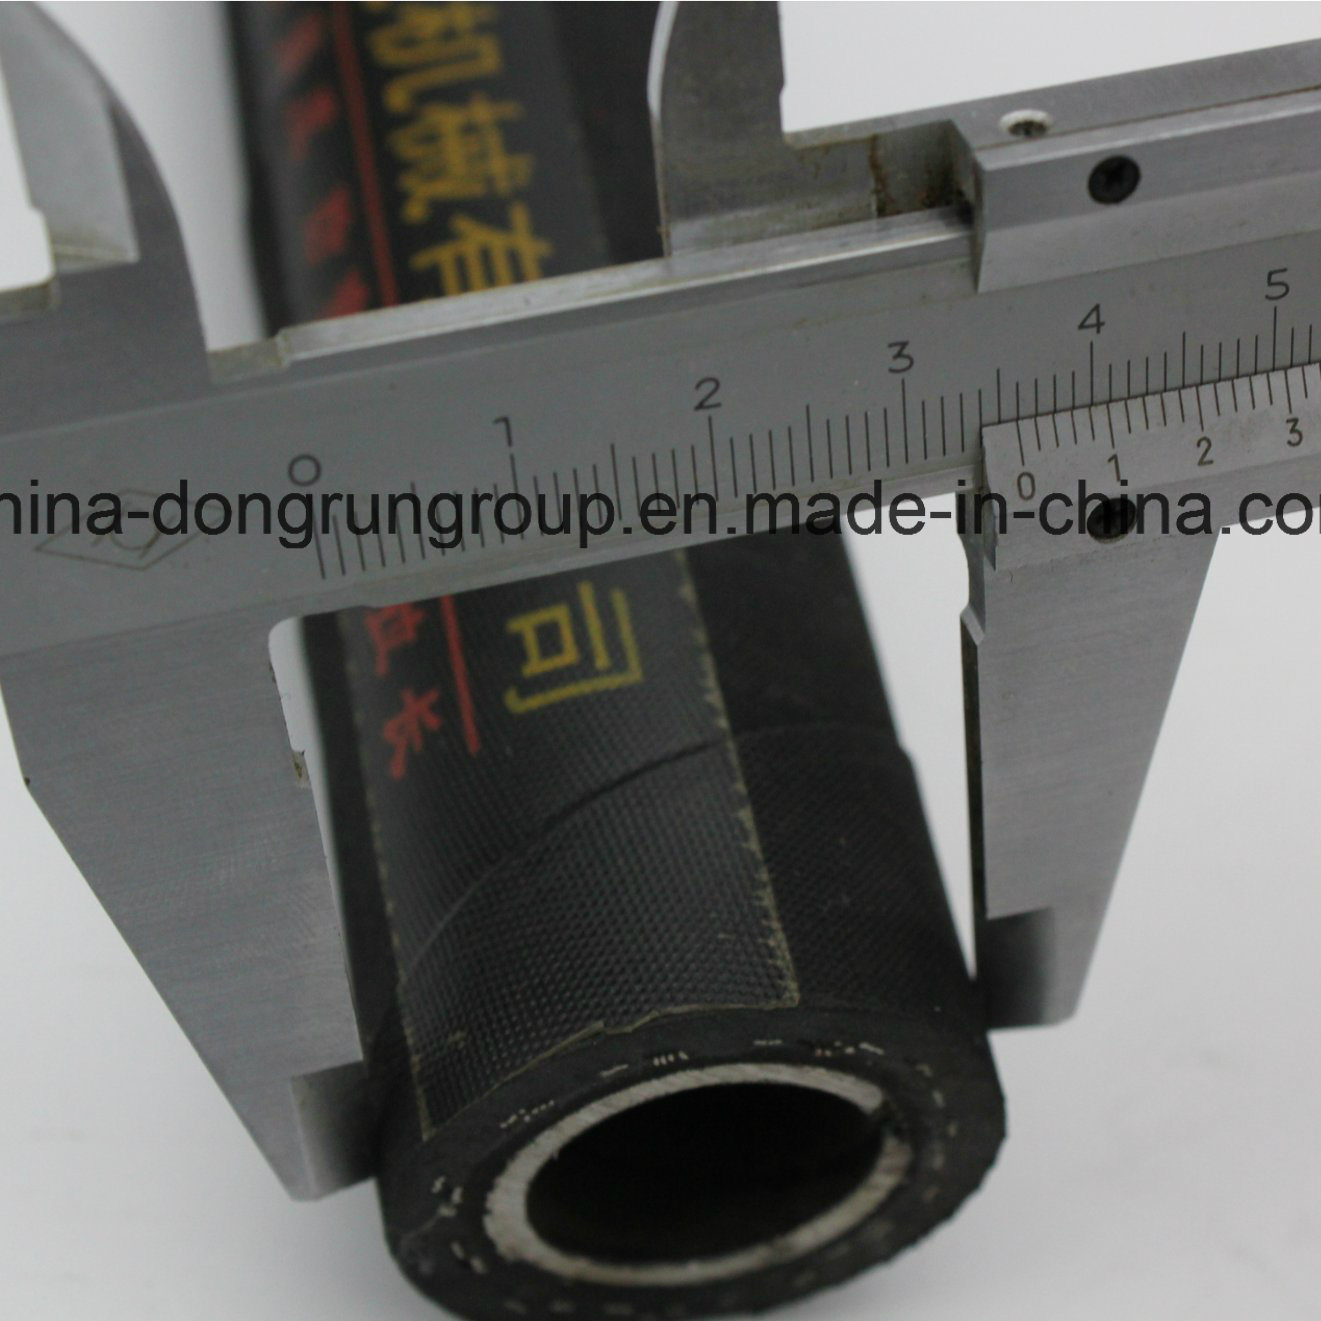 36mm Rubber Hose with Concrete Vibrator